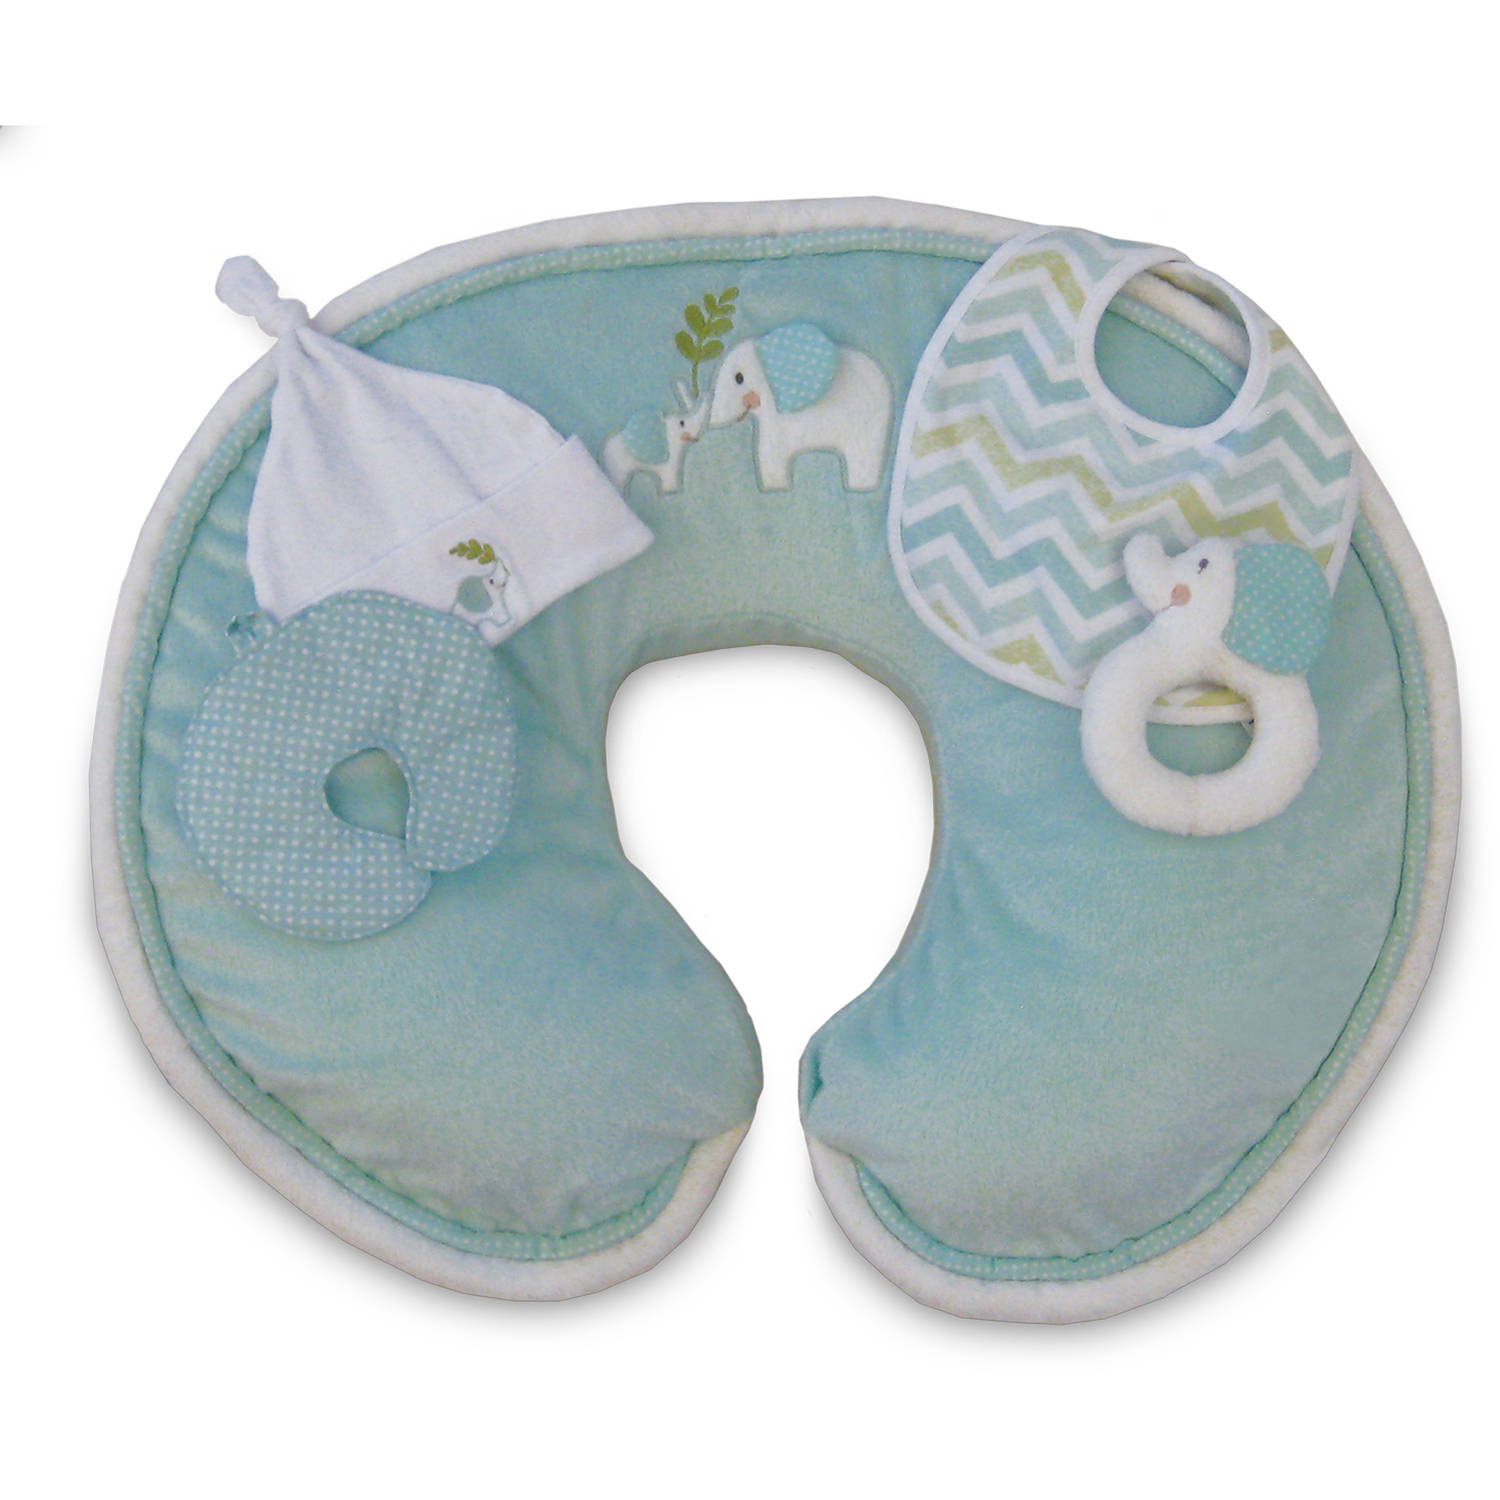 Boppy Gift Set, Elephant Hug